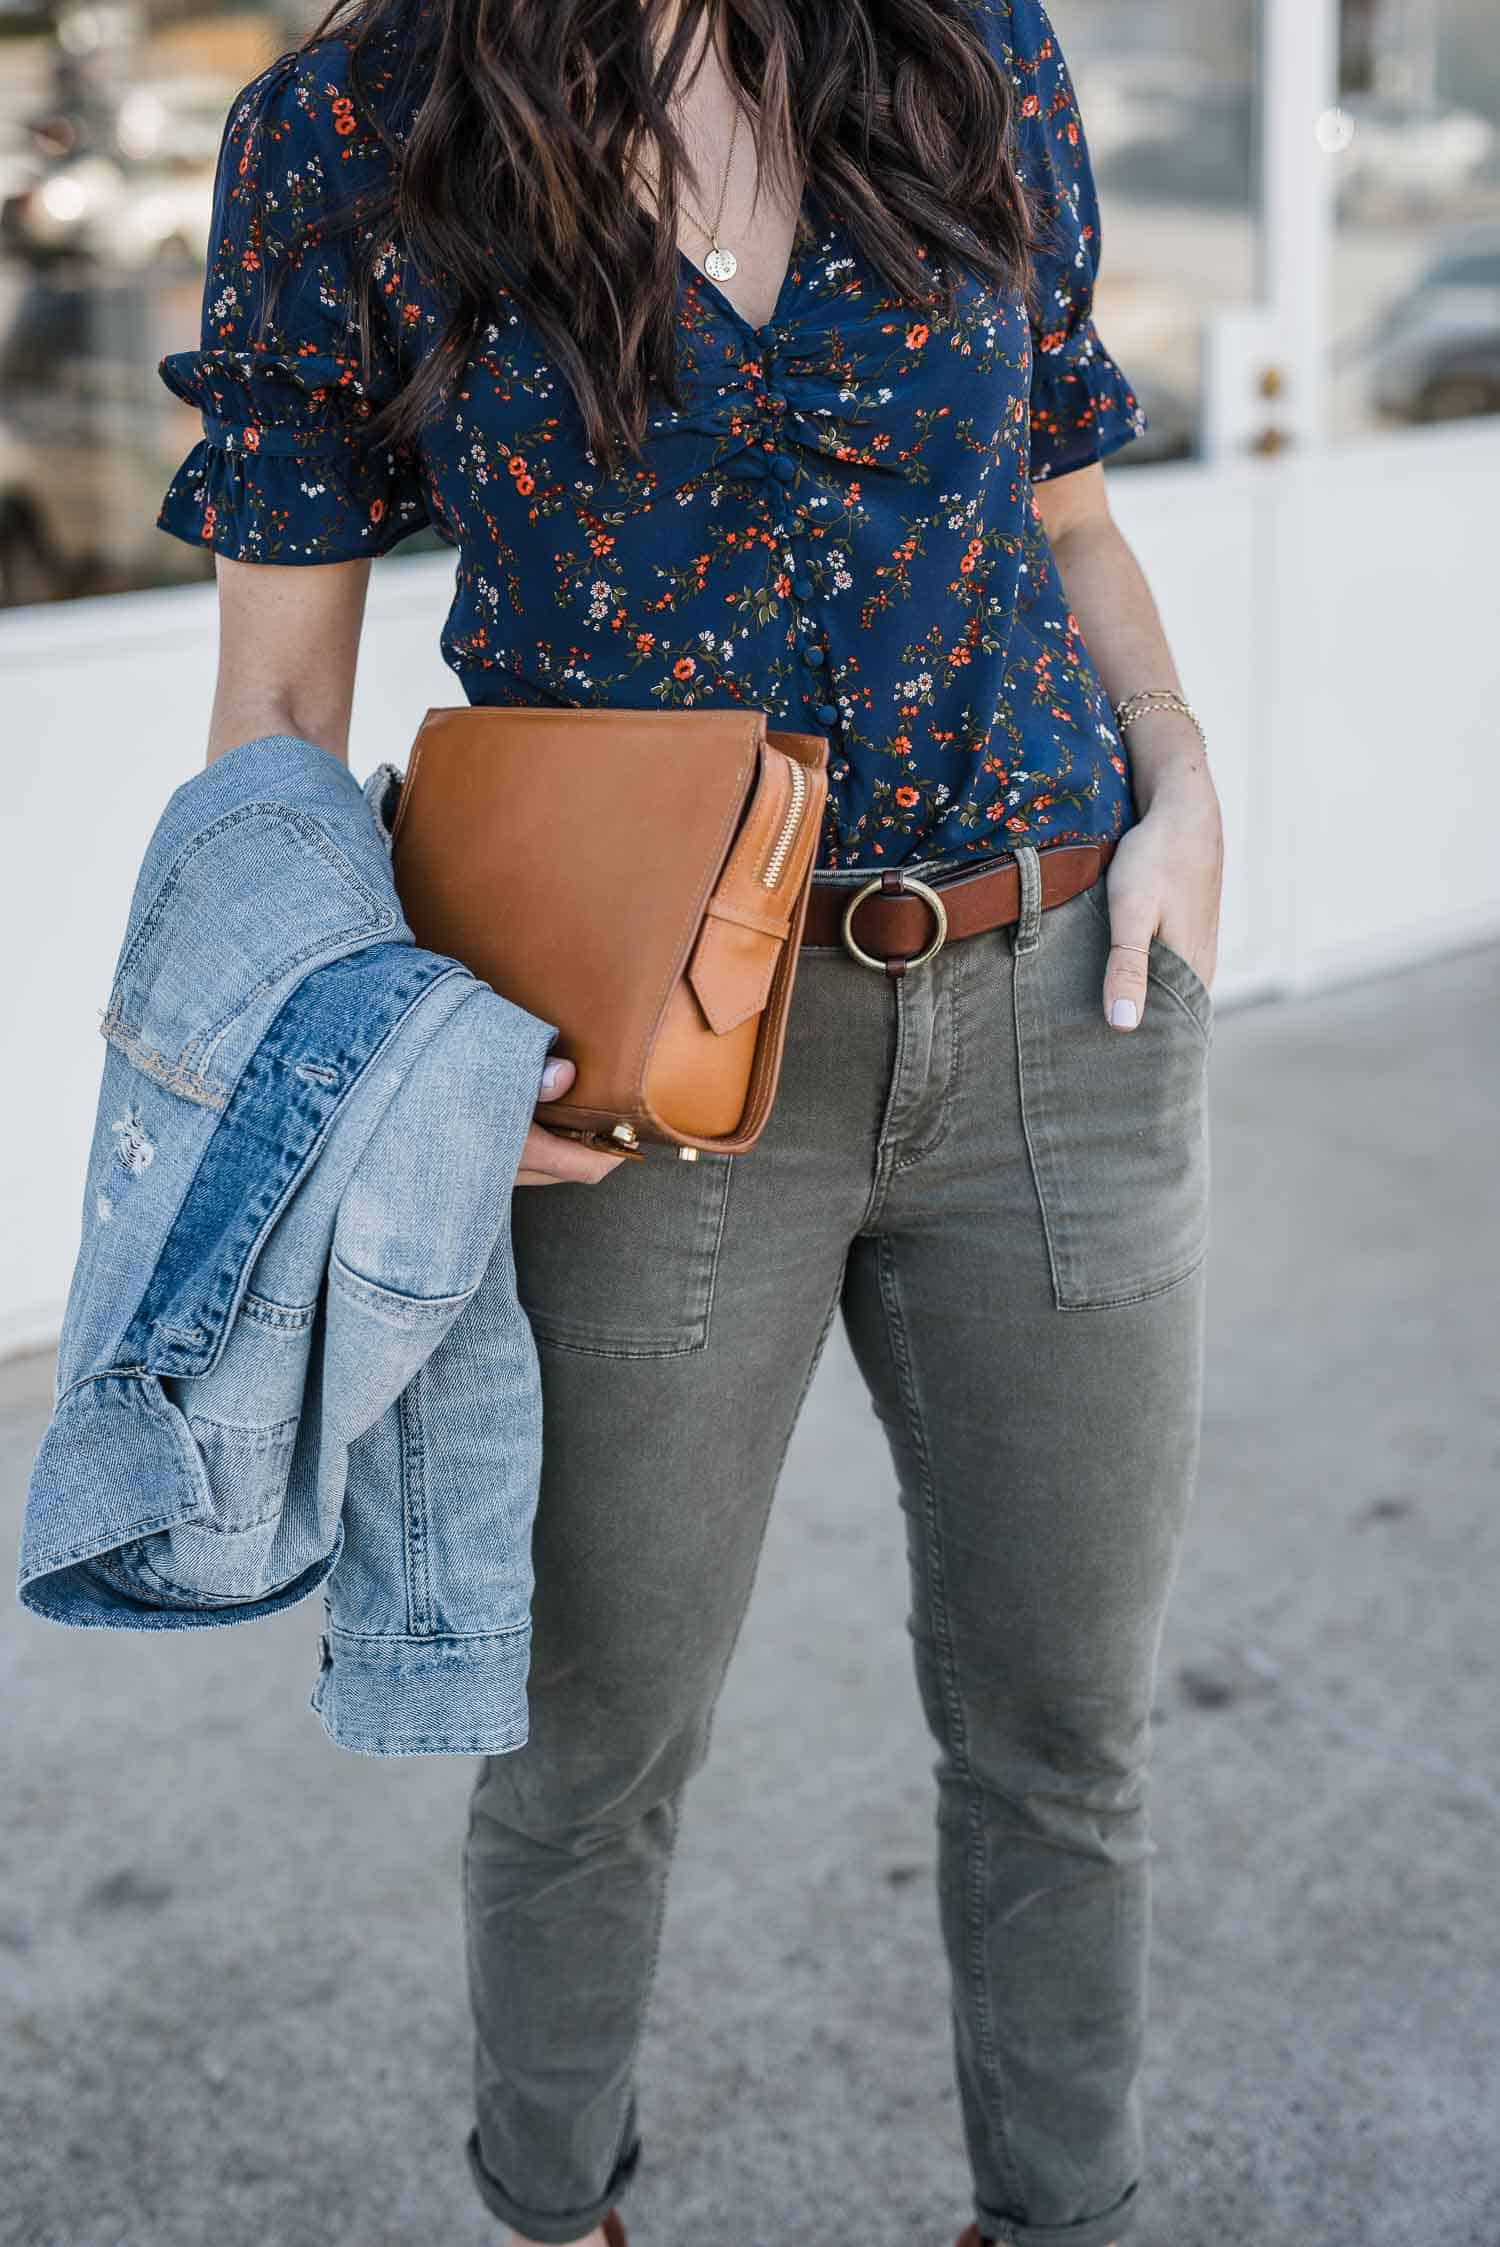 spring outfit ideas from My Style Vita